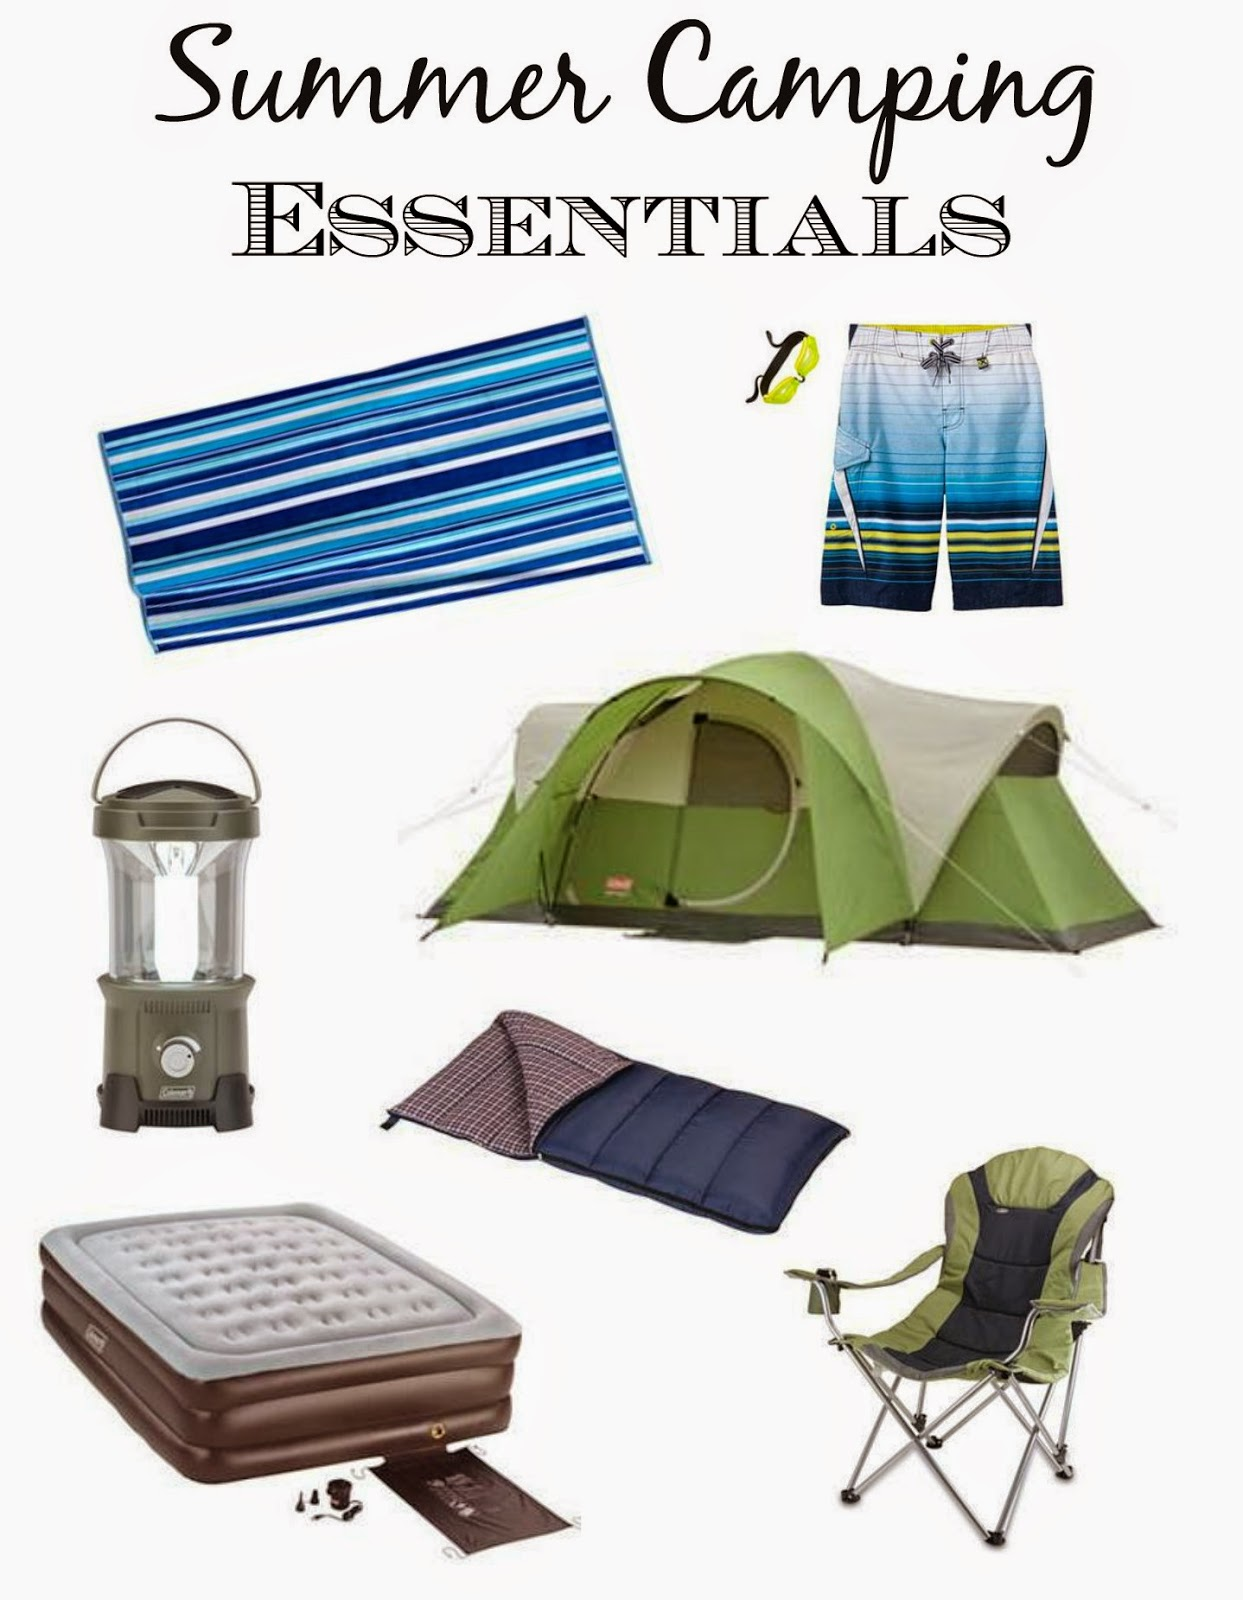 Summer Camping Essentials from Kohl's - Outnumbered 3 to 1